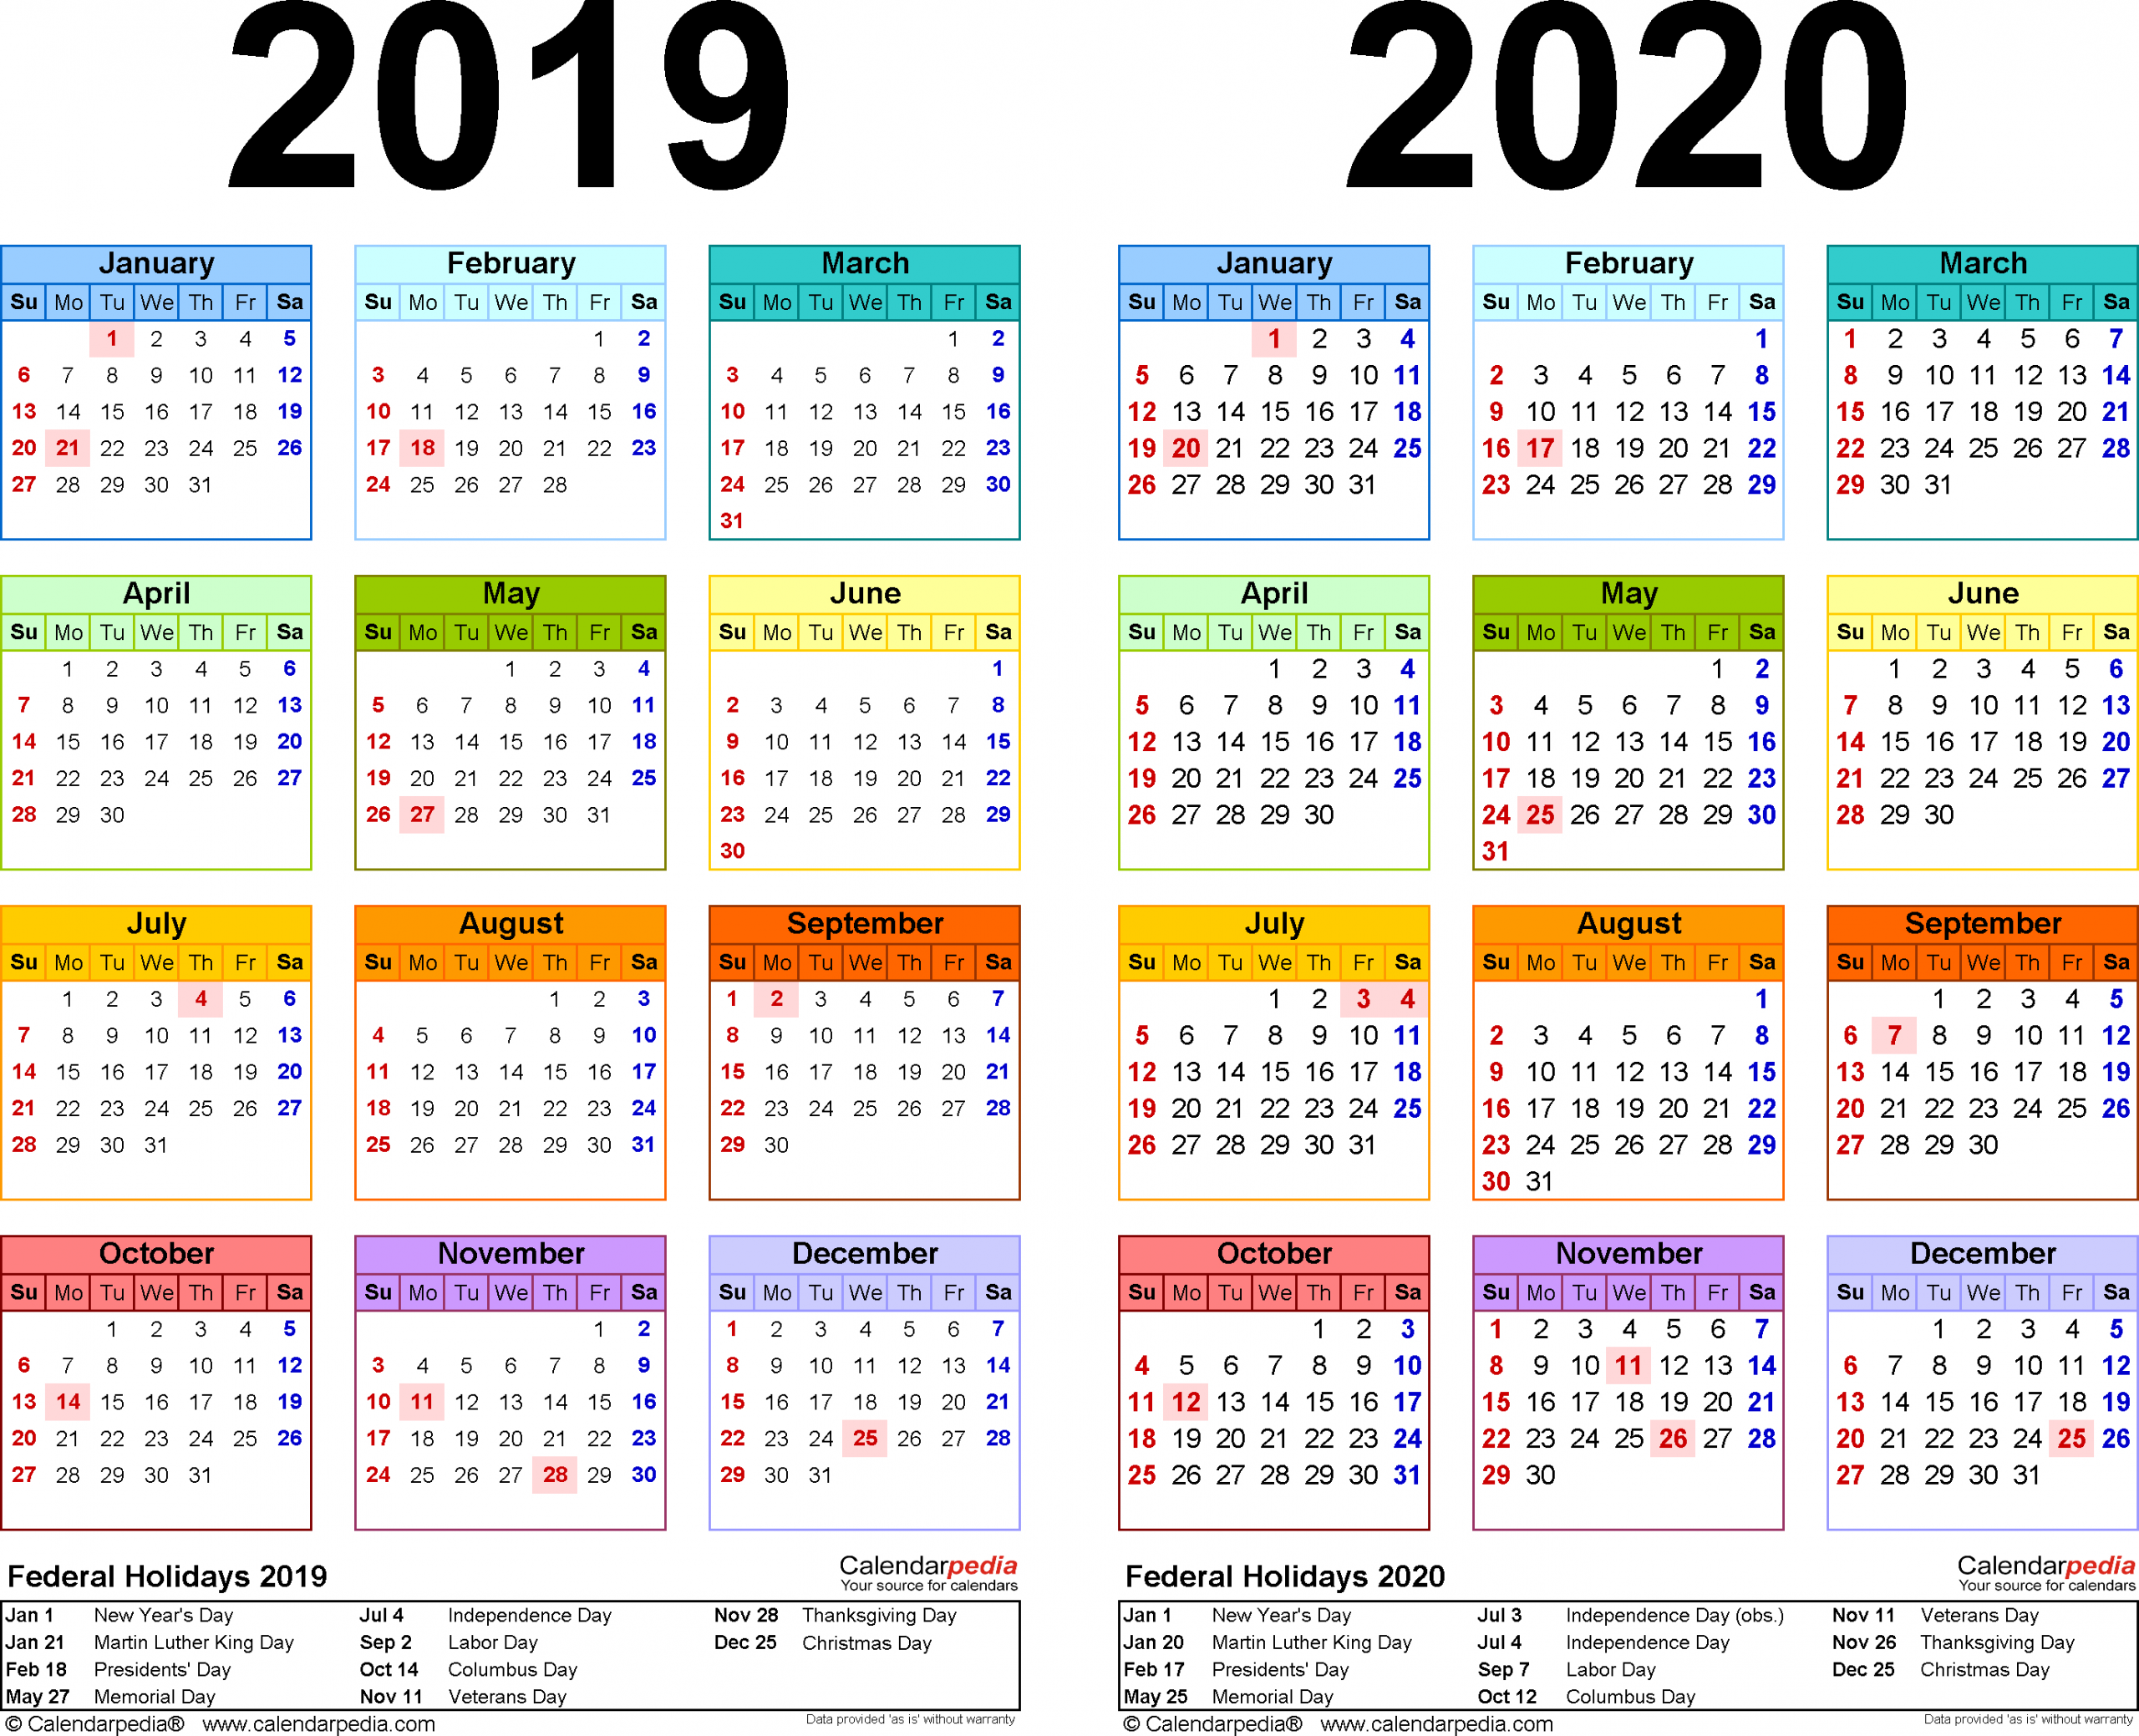 2020 Calendar Same As What Year | Calendar Printable Free